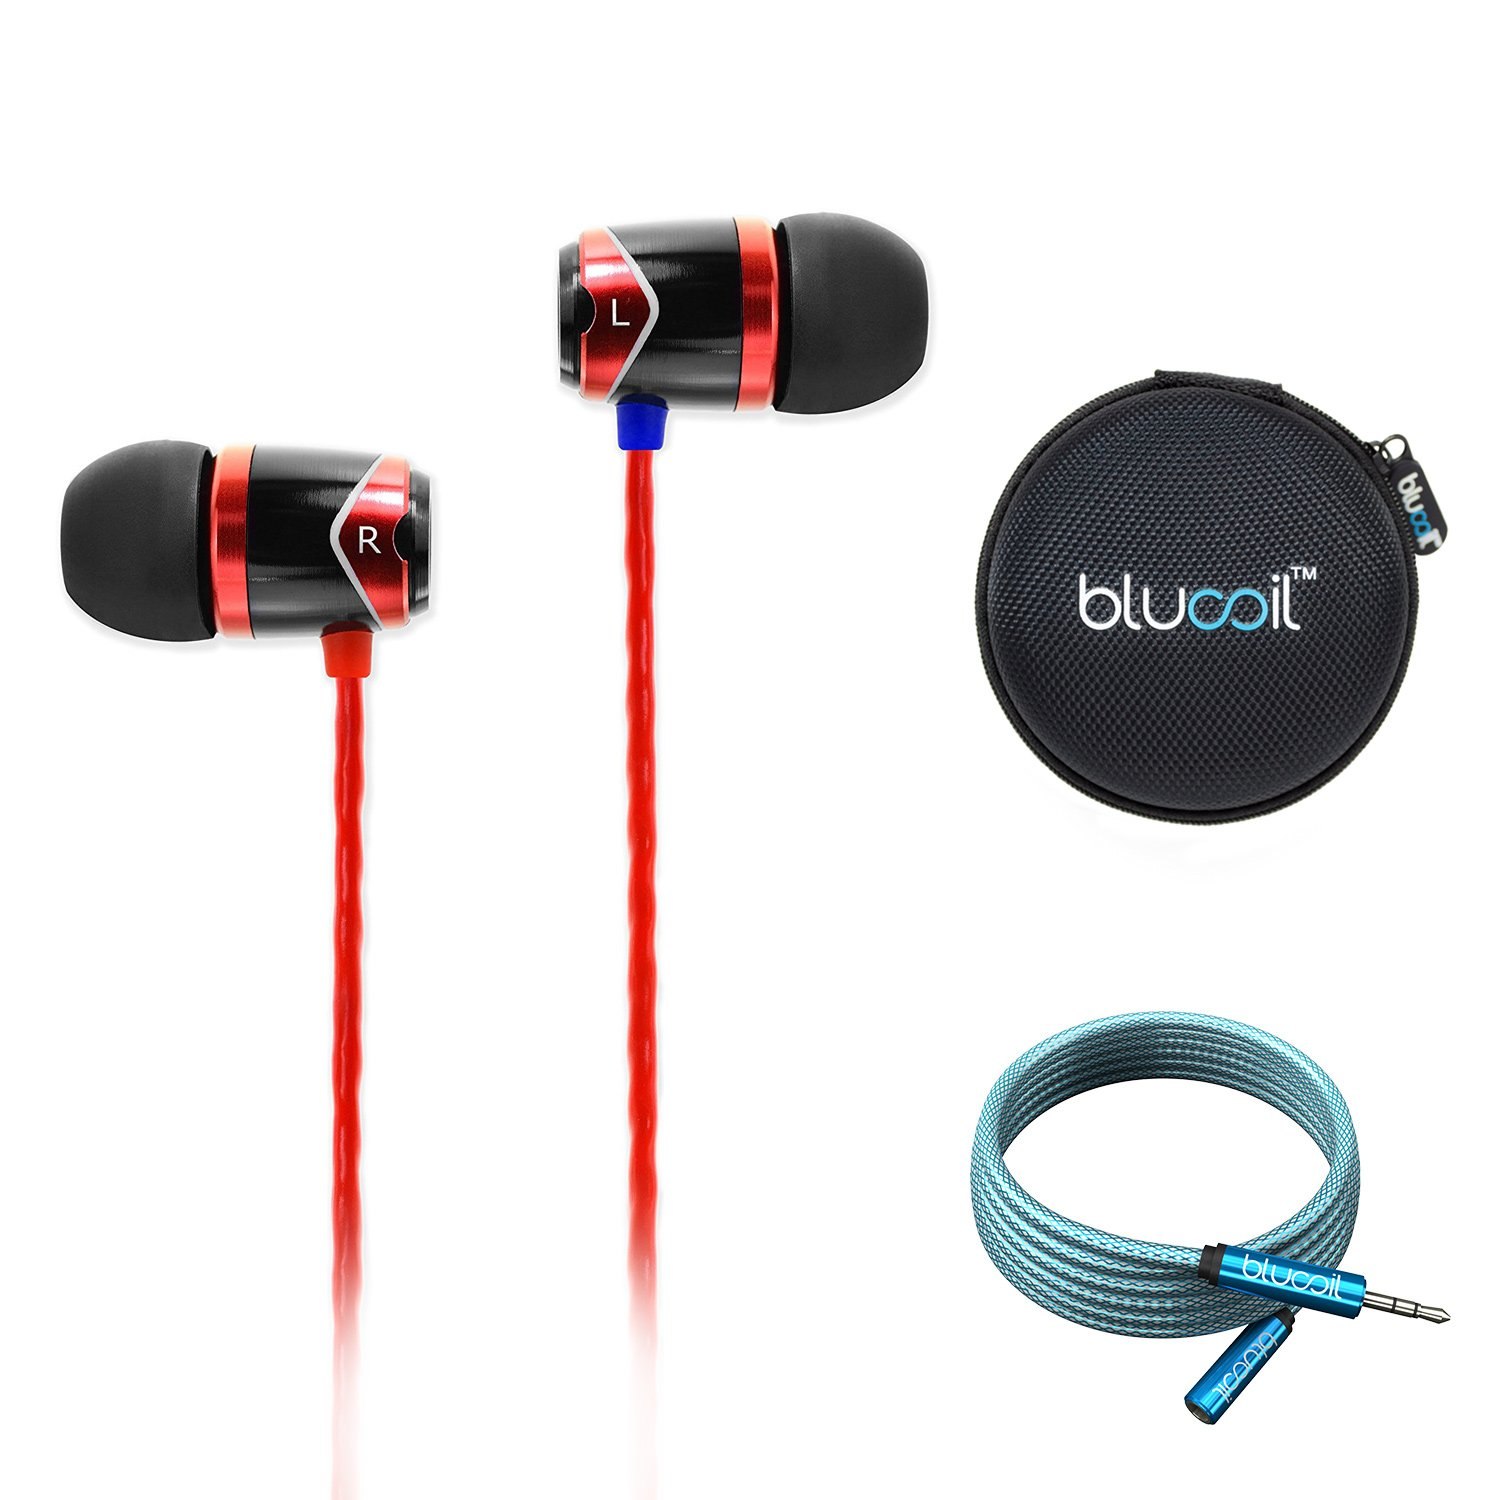 SoundMAGIC E10 in-Ear Earphones Noise Isolating Earbuds (Black/Red) Bundle with Blucoil 6-Ft Extension Cable and Portable Earphone Hard Case